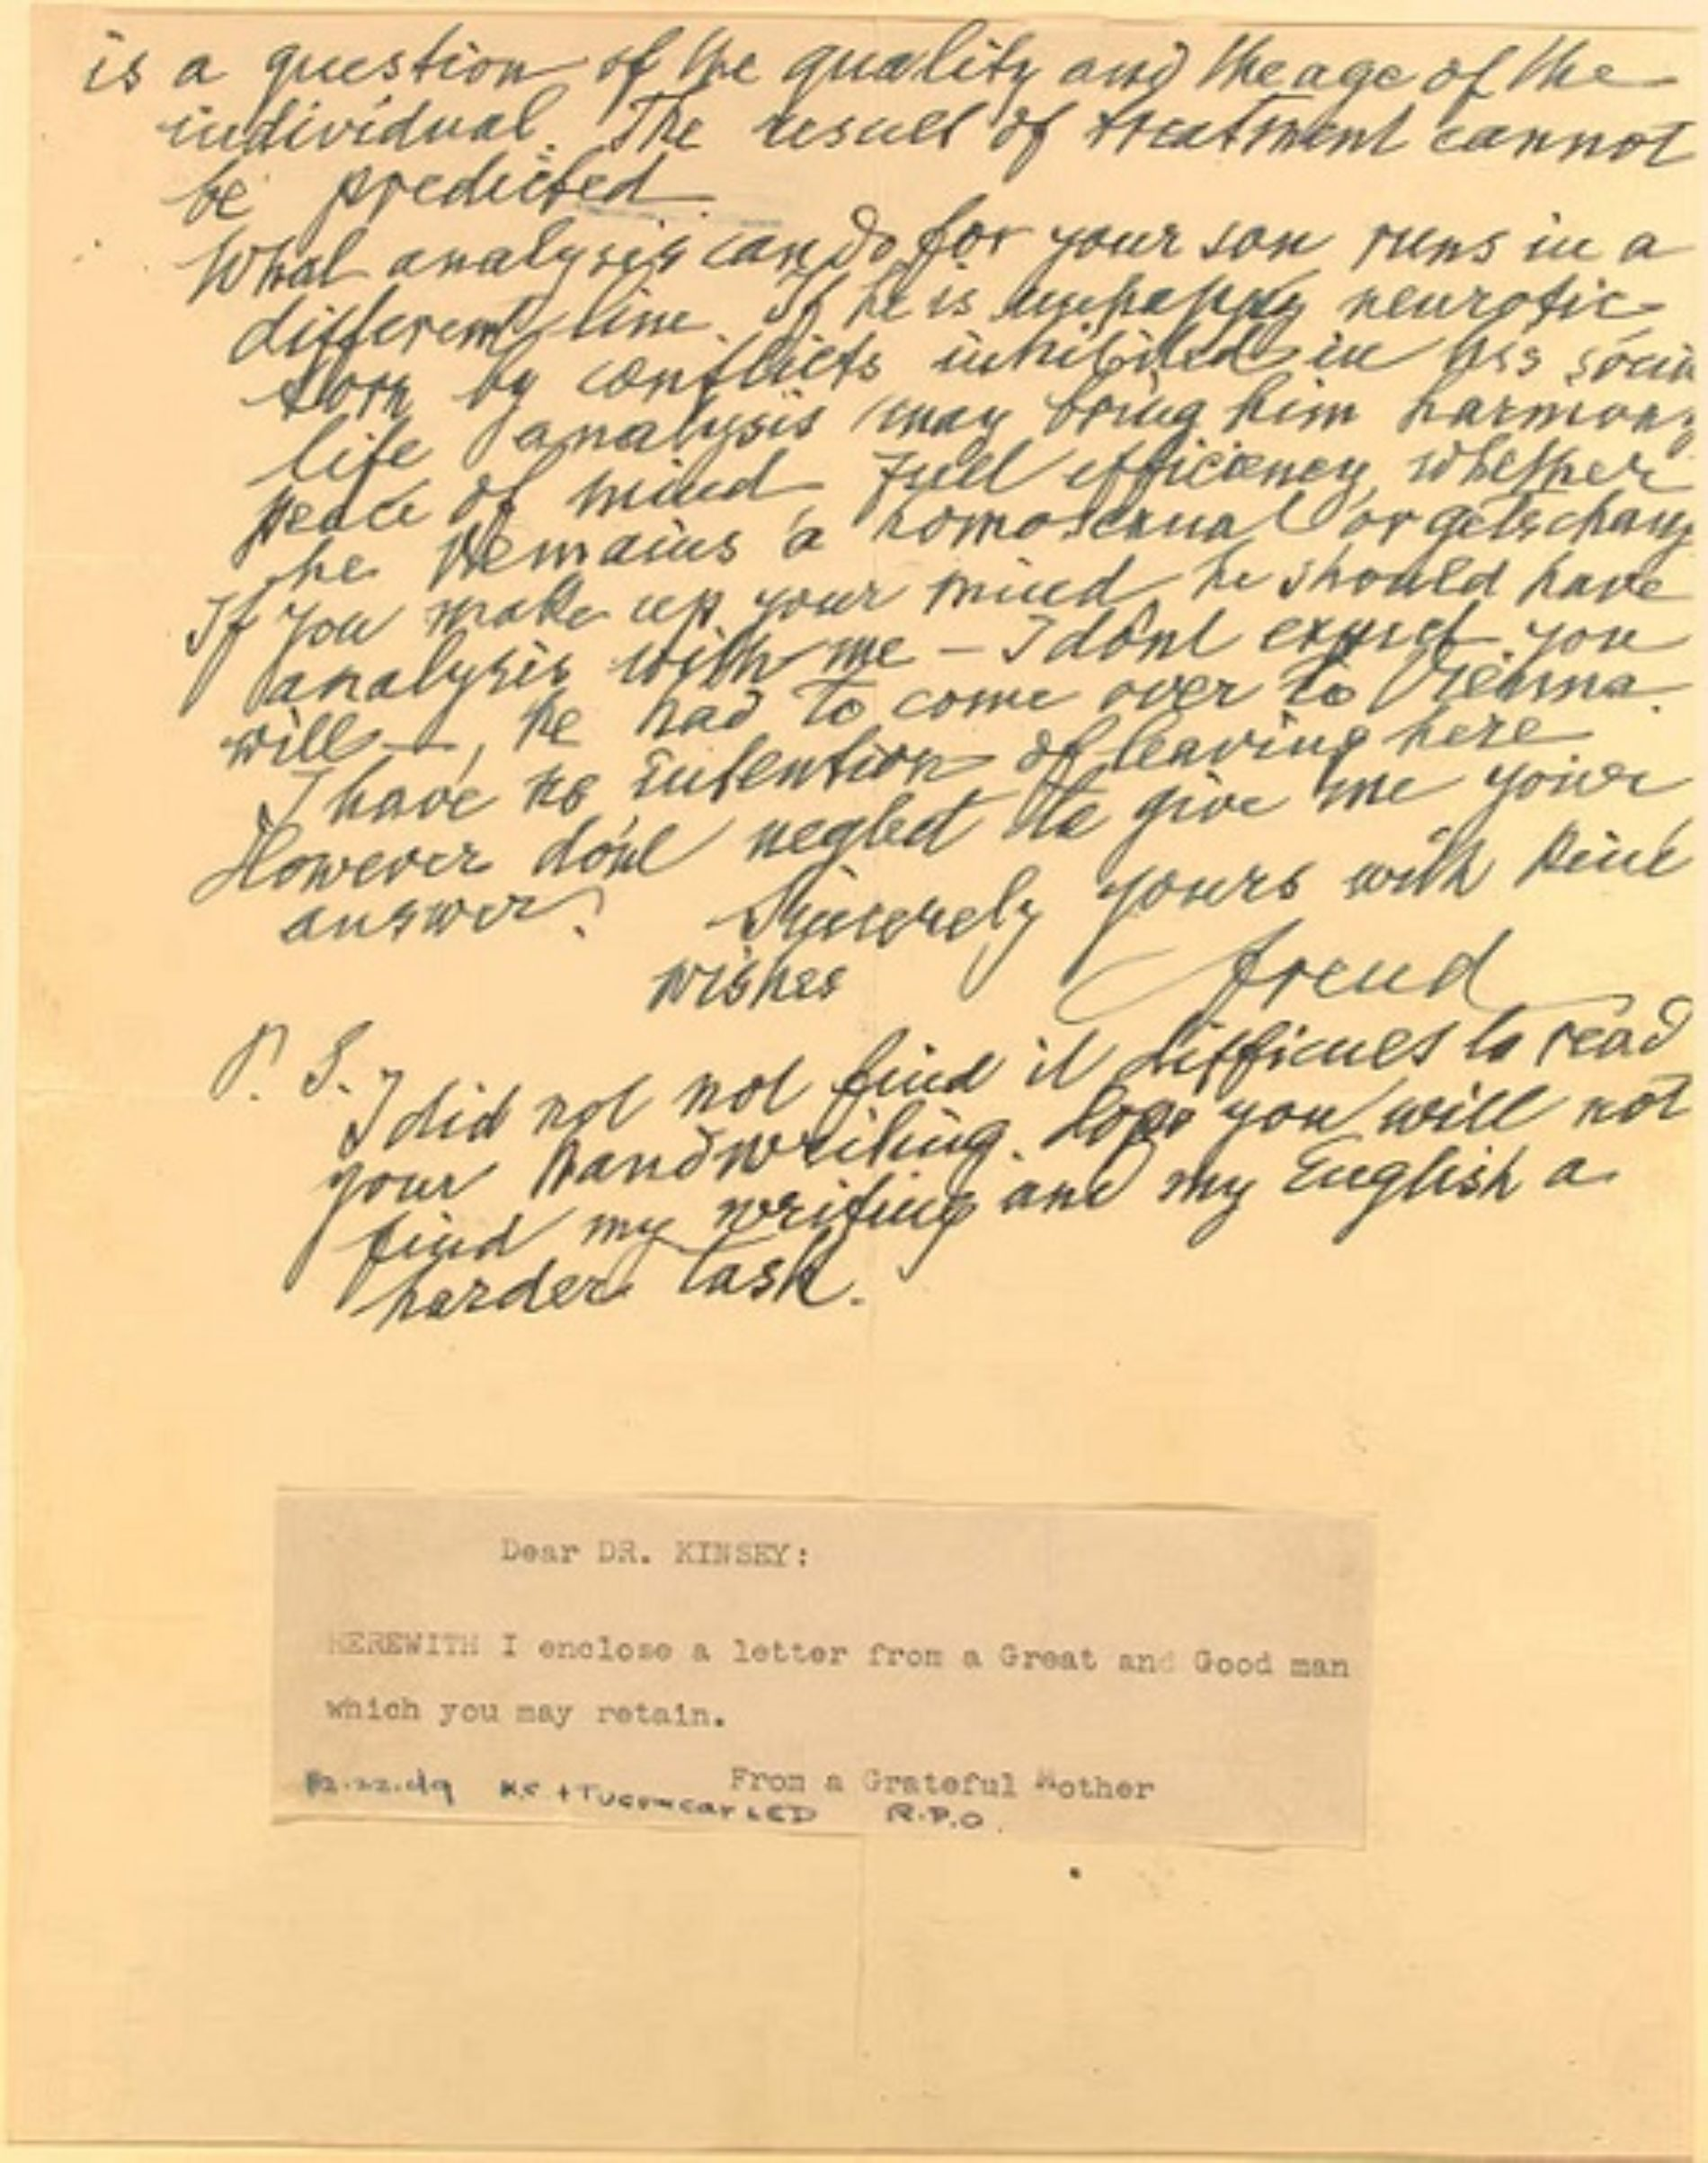 The Letter Sigmund Freud Wrote Which Is A Surprisingly Evolved Take On Homosexuality